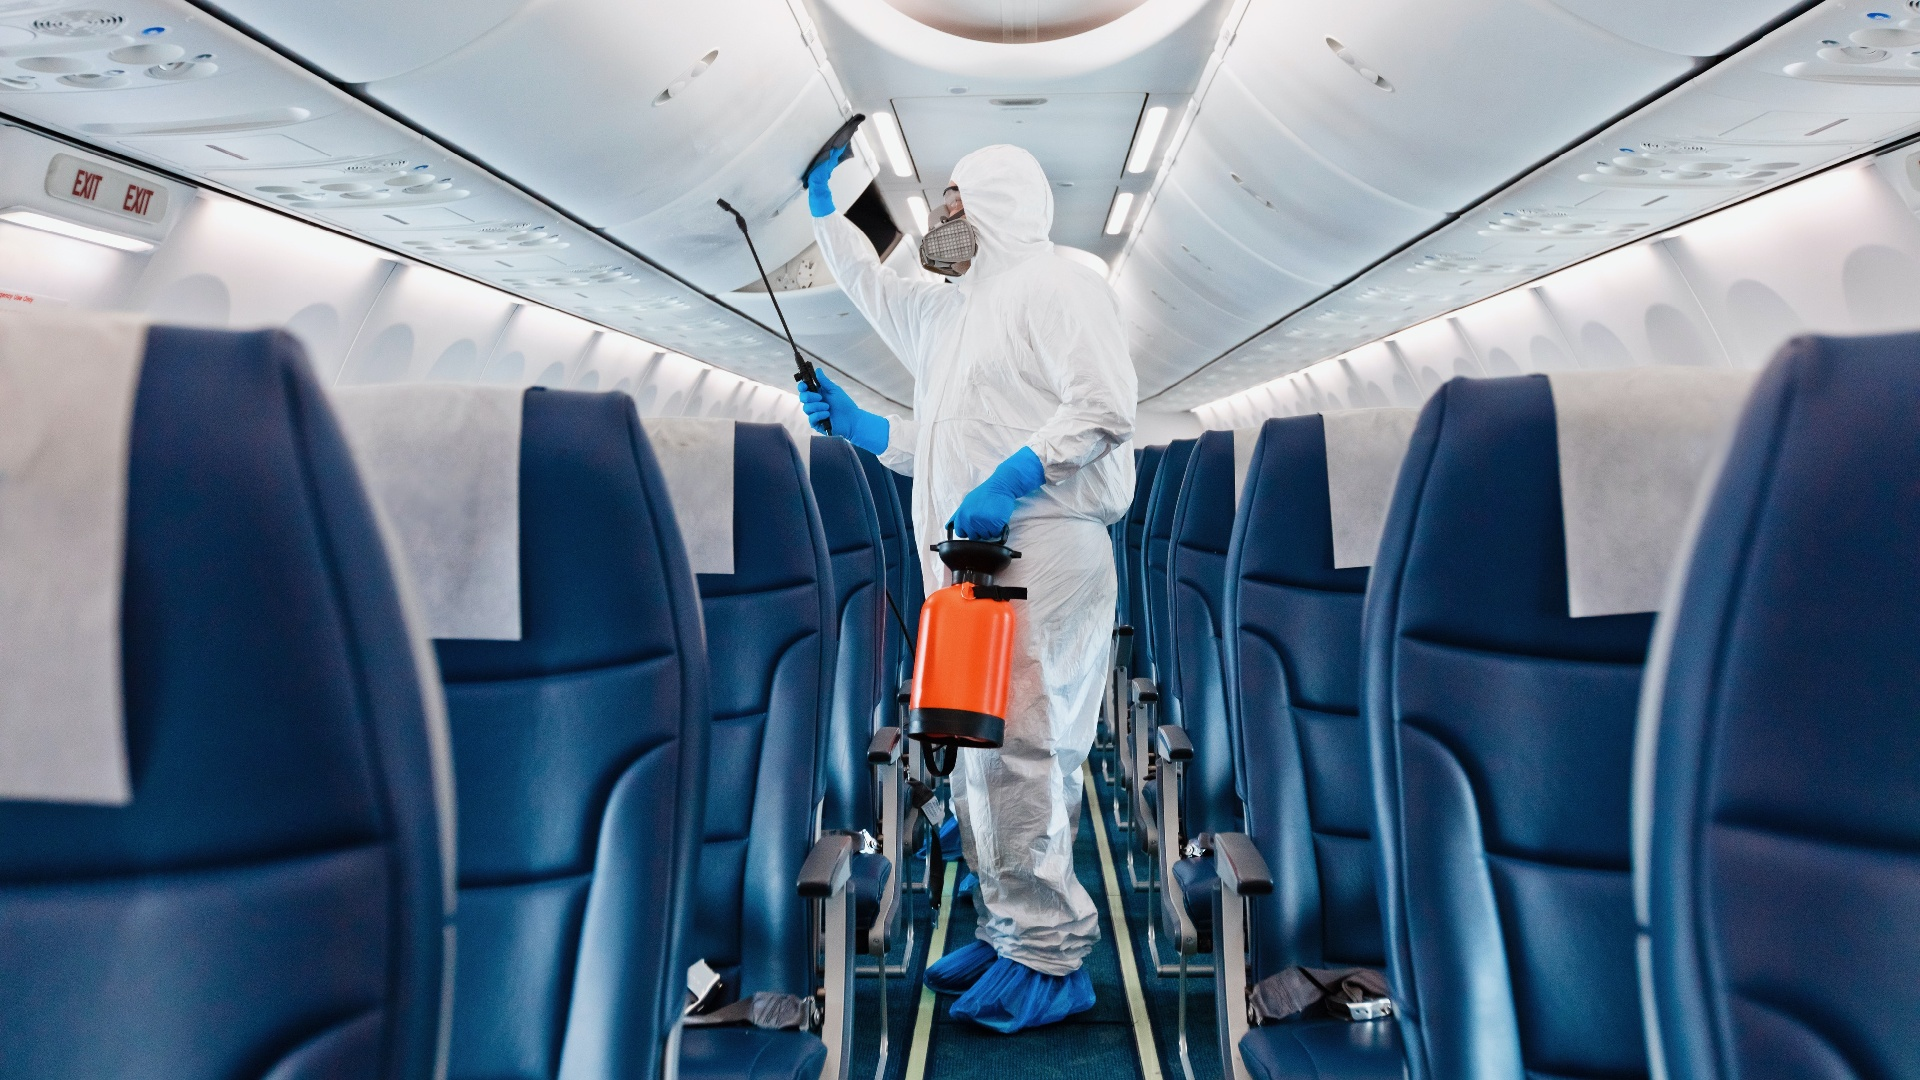 What does it cost to achieve a contaminate-free cabin environment?